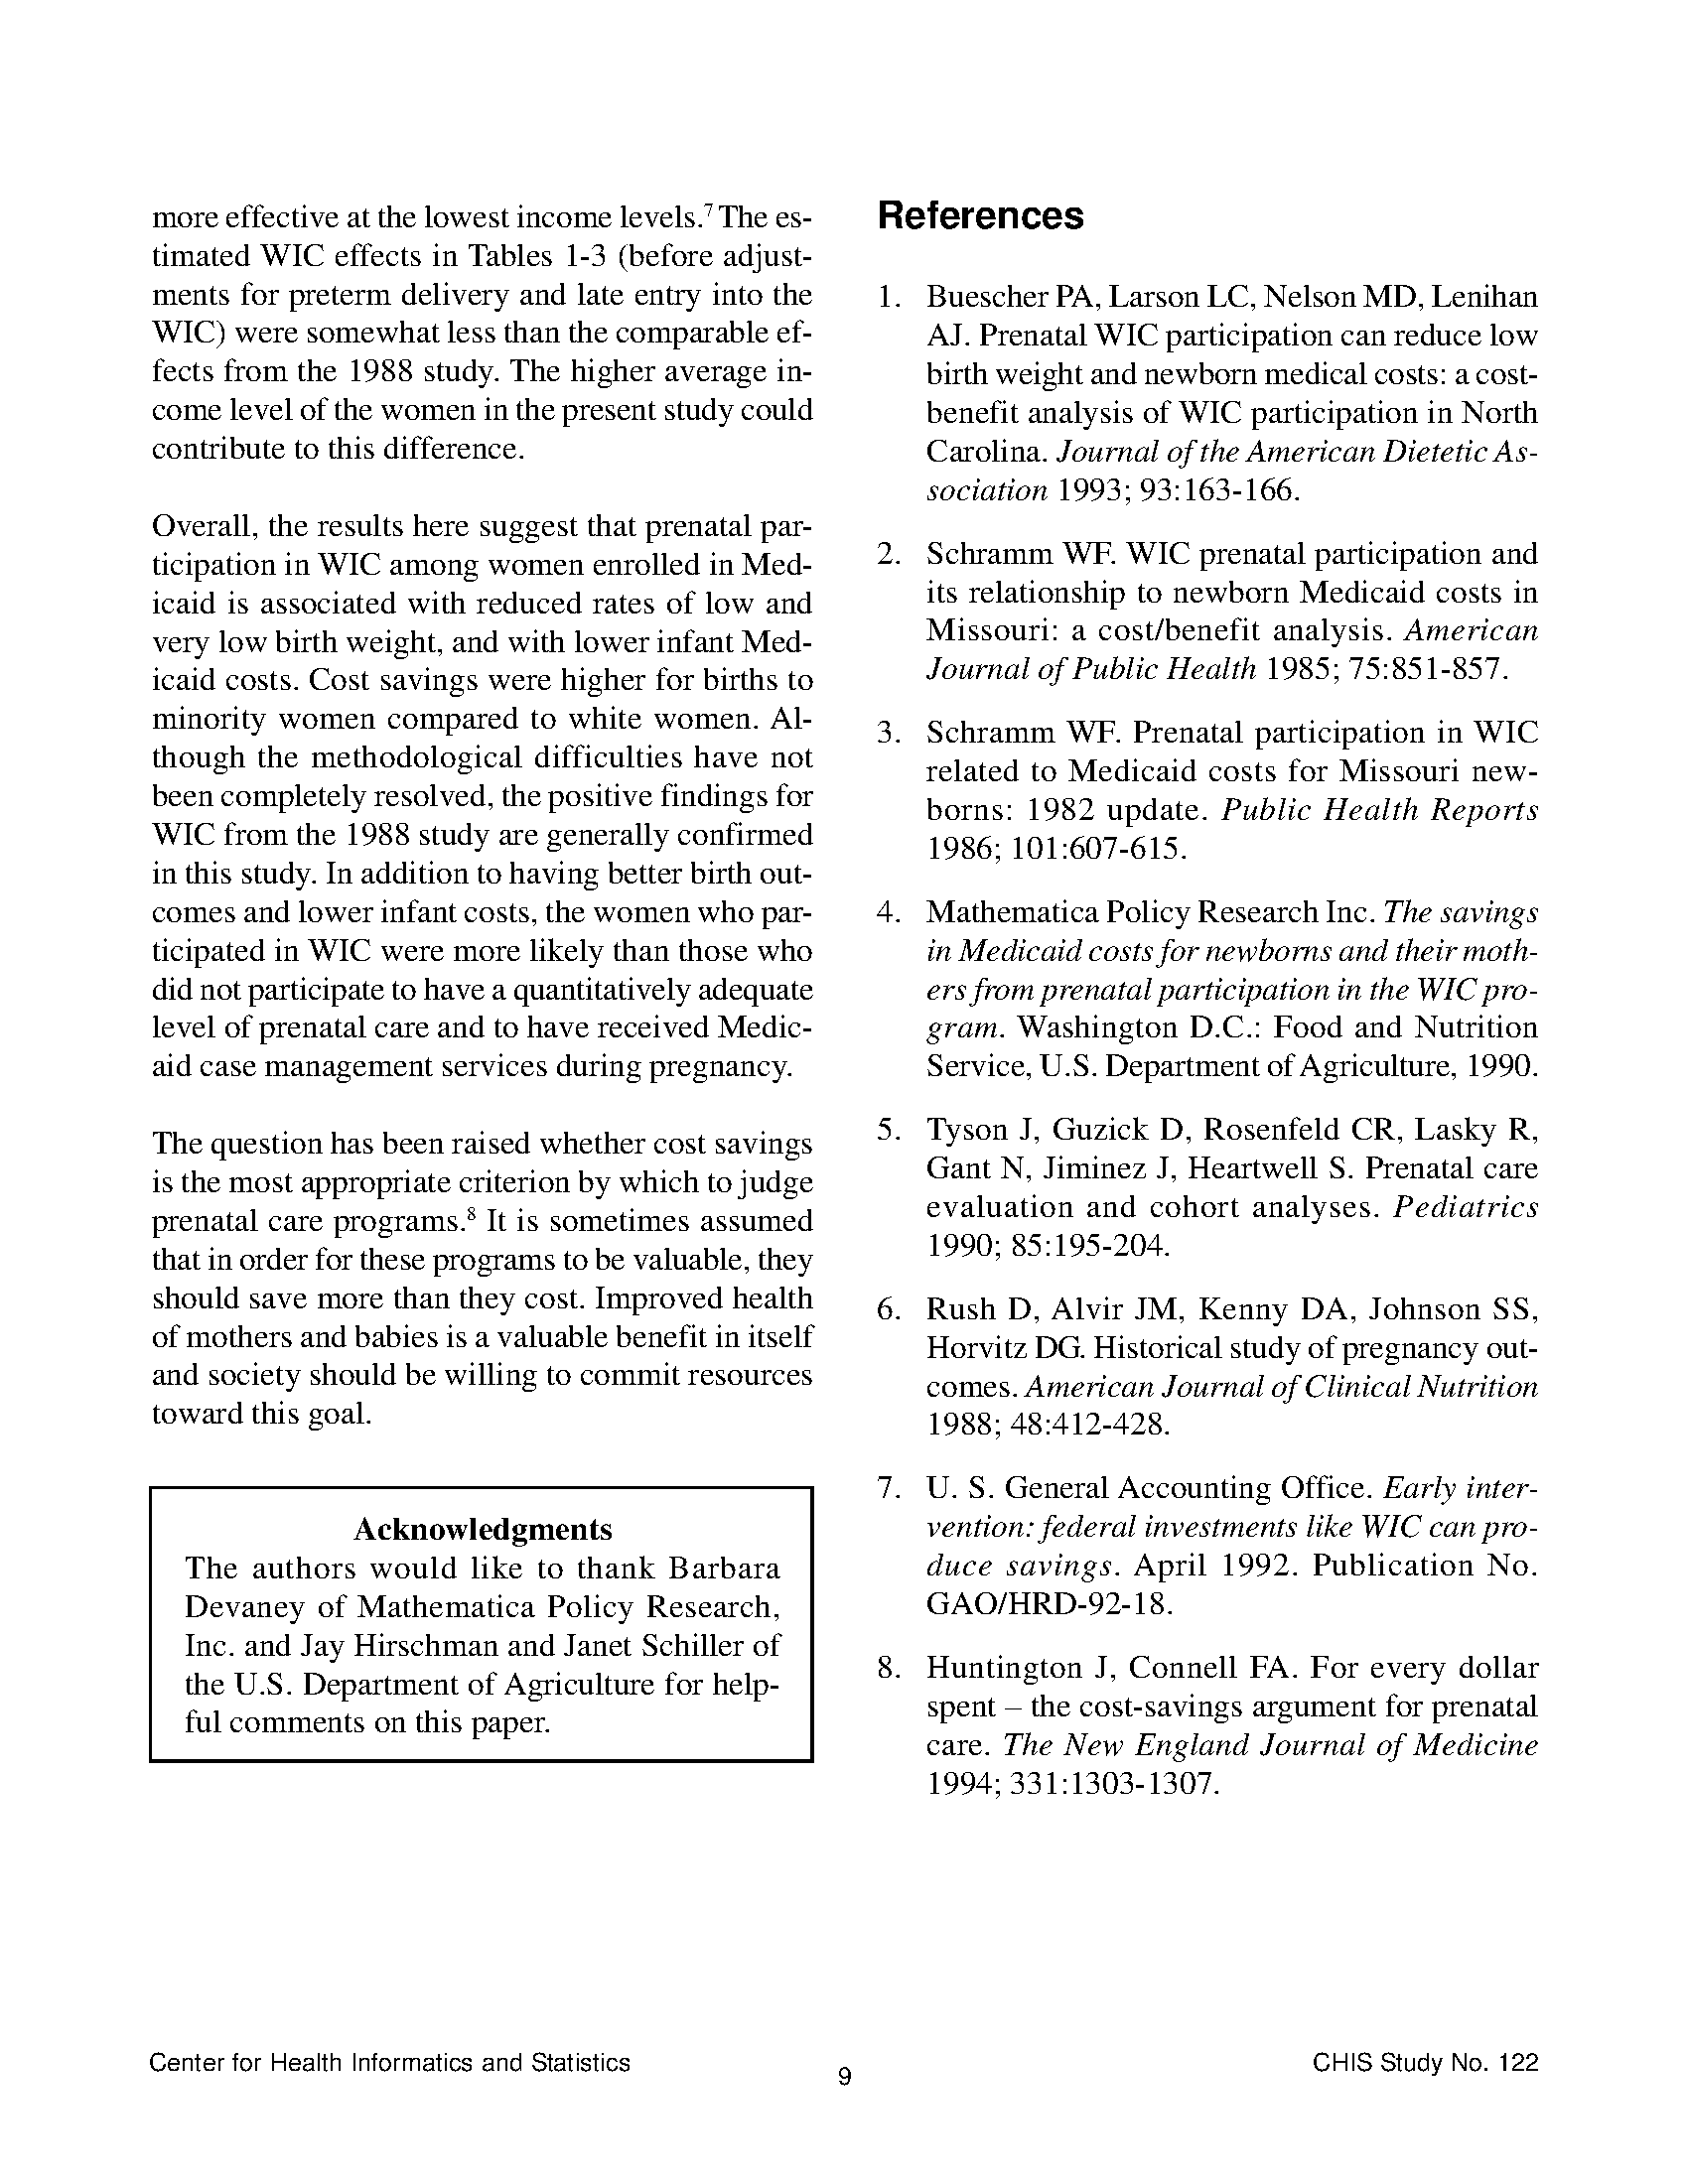 Prenatal Wic Participation In Relation To Low Birth Weight And Medicaid Infant Costs In North Carolina A 1997 Update Page 9 State Publications North Carolina Digital Collections